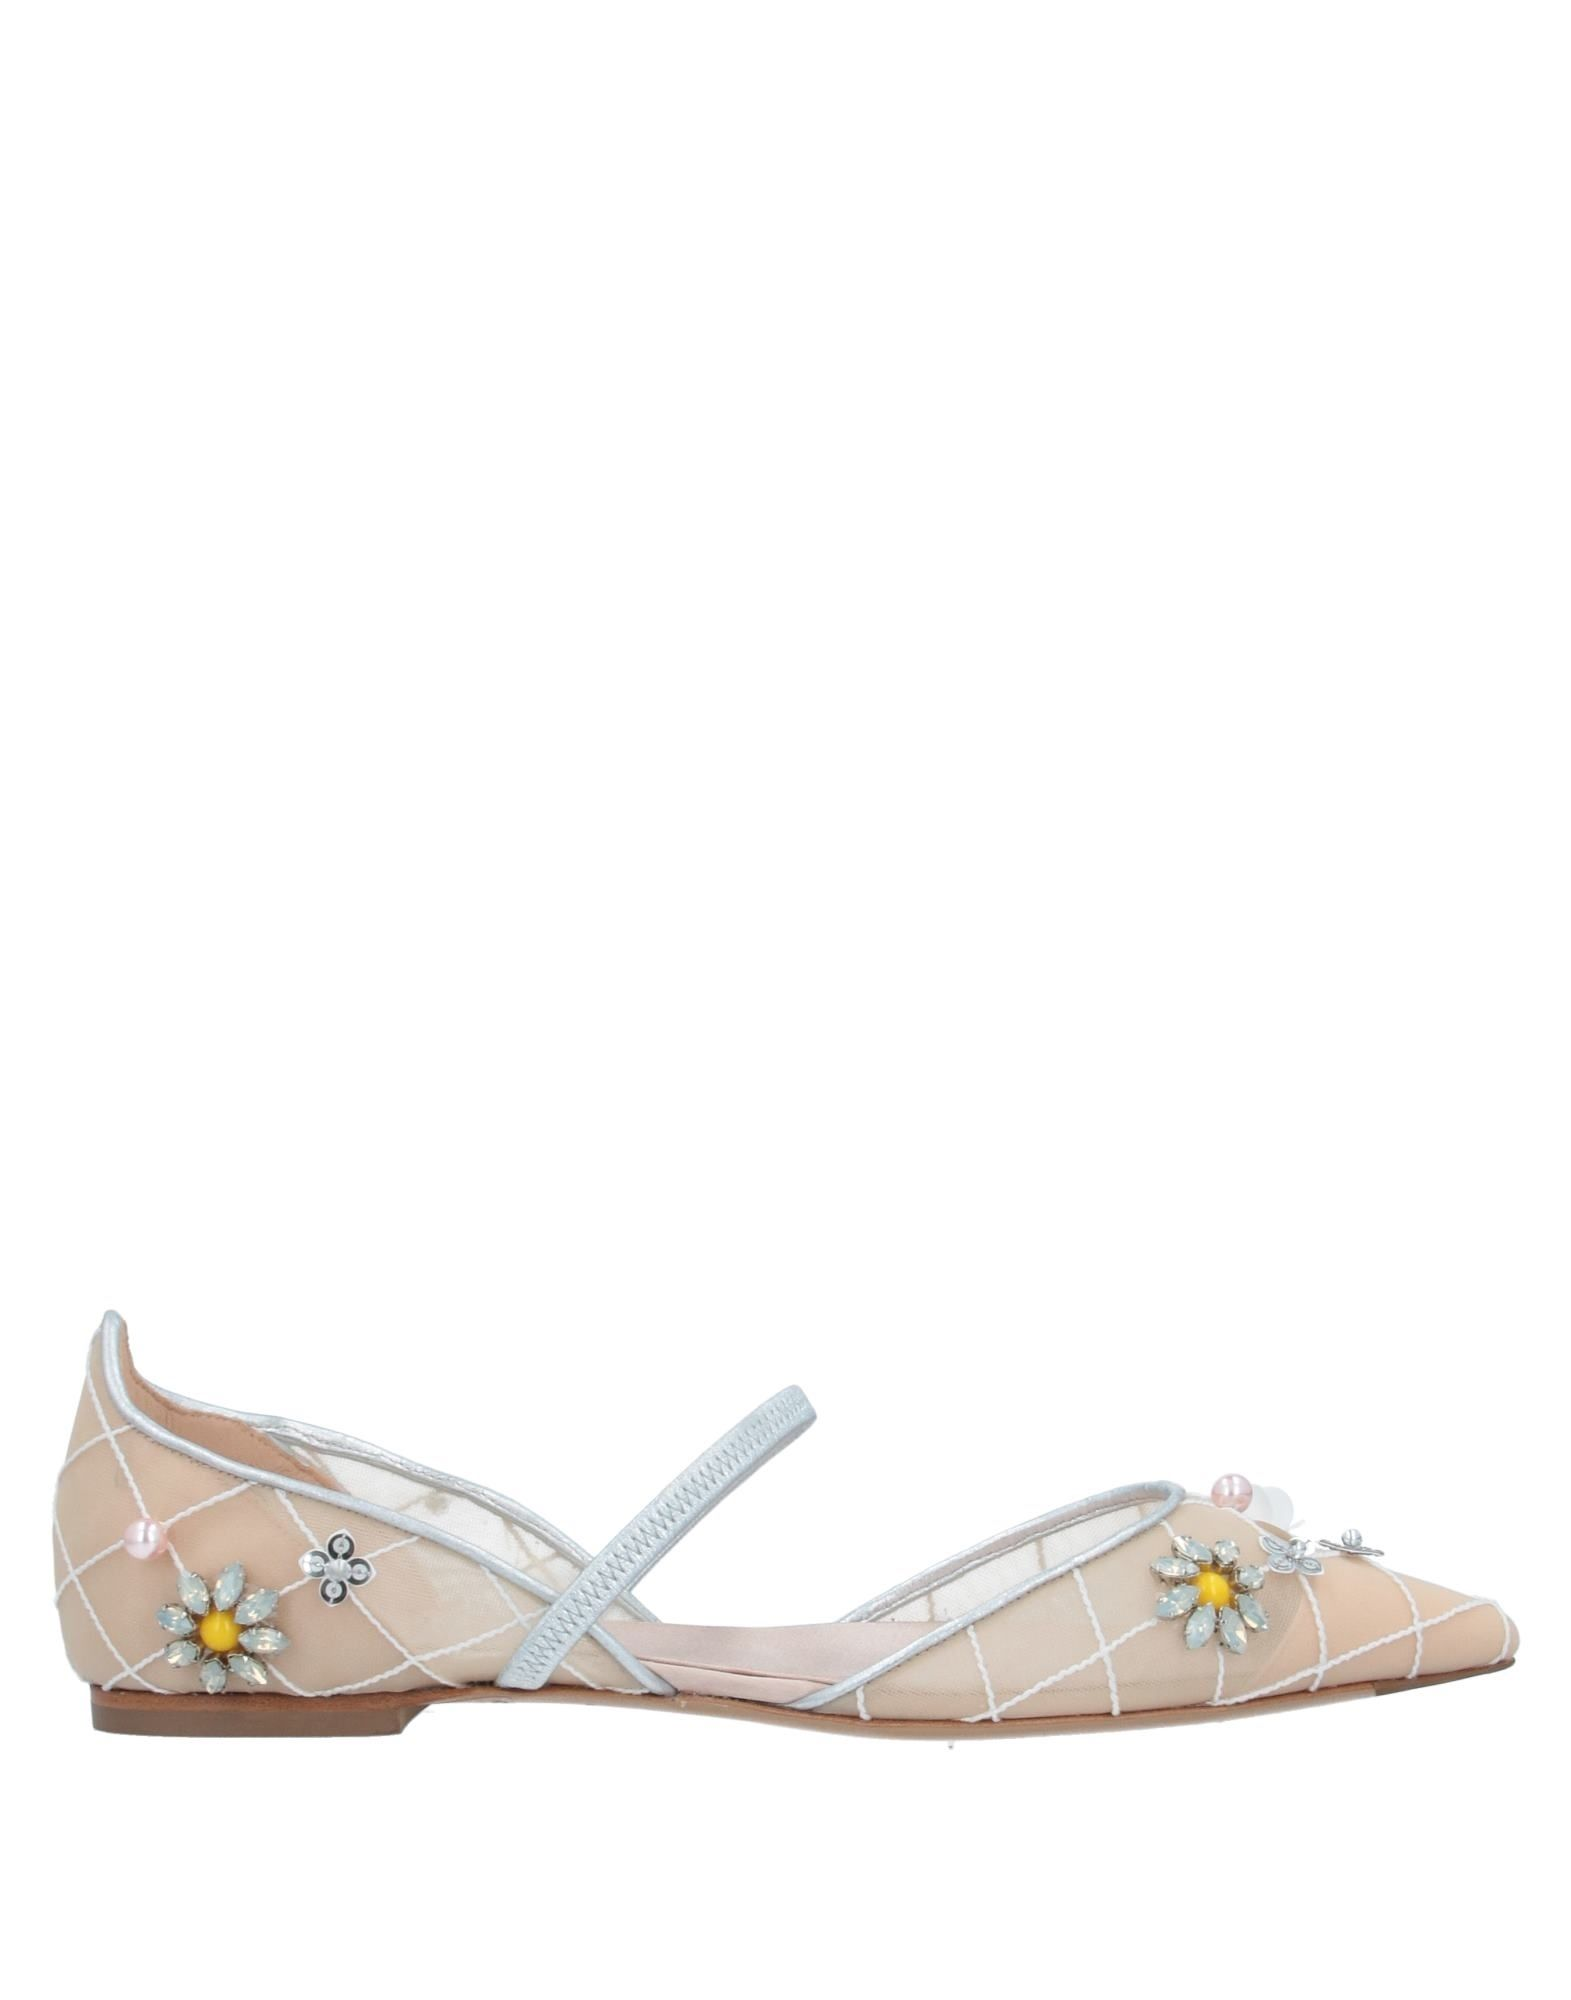 ROGER VIVIER Ballet flats. sequins, contrasting applications, solid color, narrow toeline, flat, fabric inner, leather sole, elasticized gores, contains non-textile parts of animal origin. Textile fibers, Soft Leather